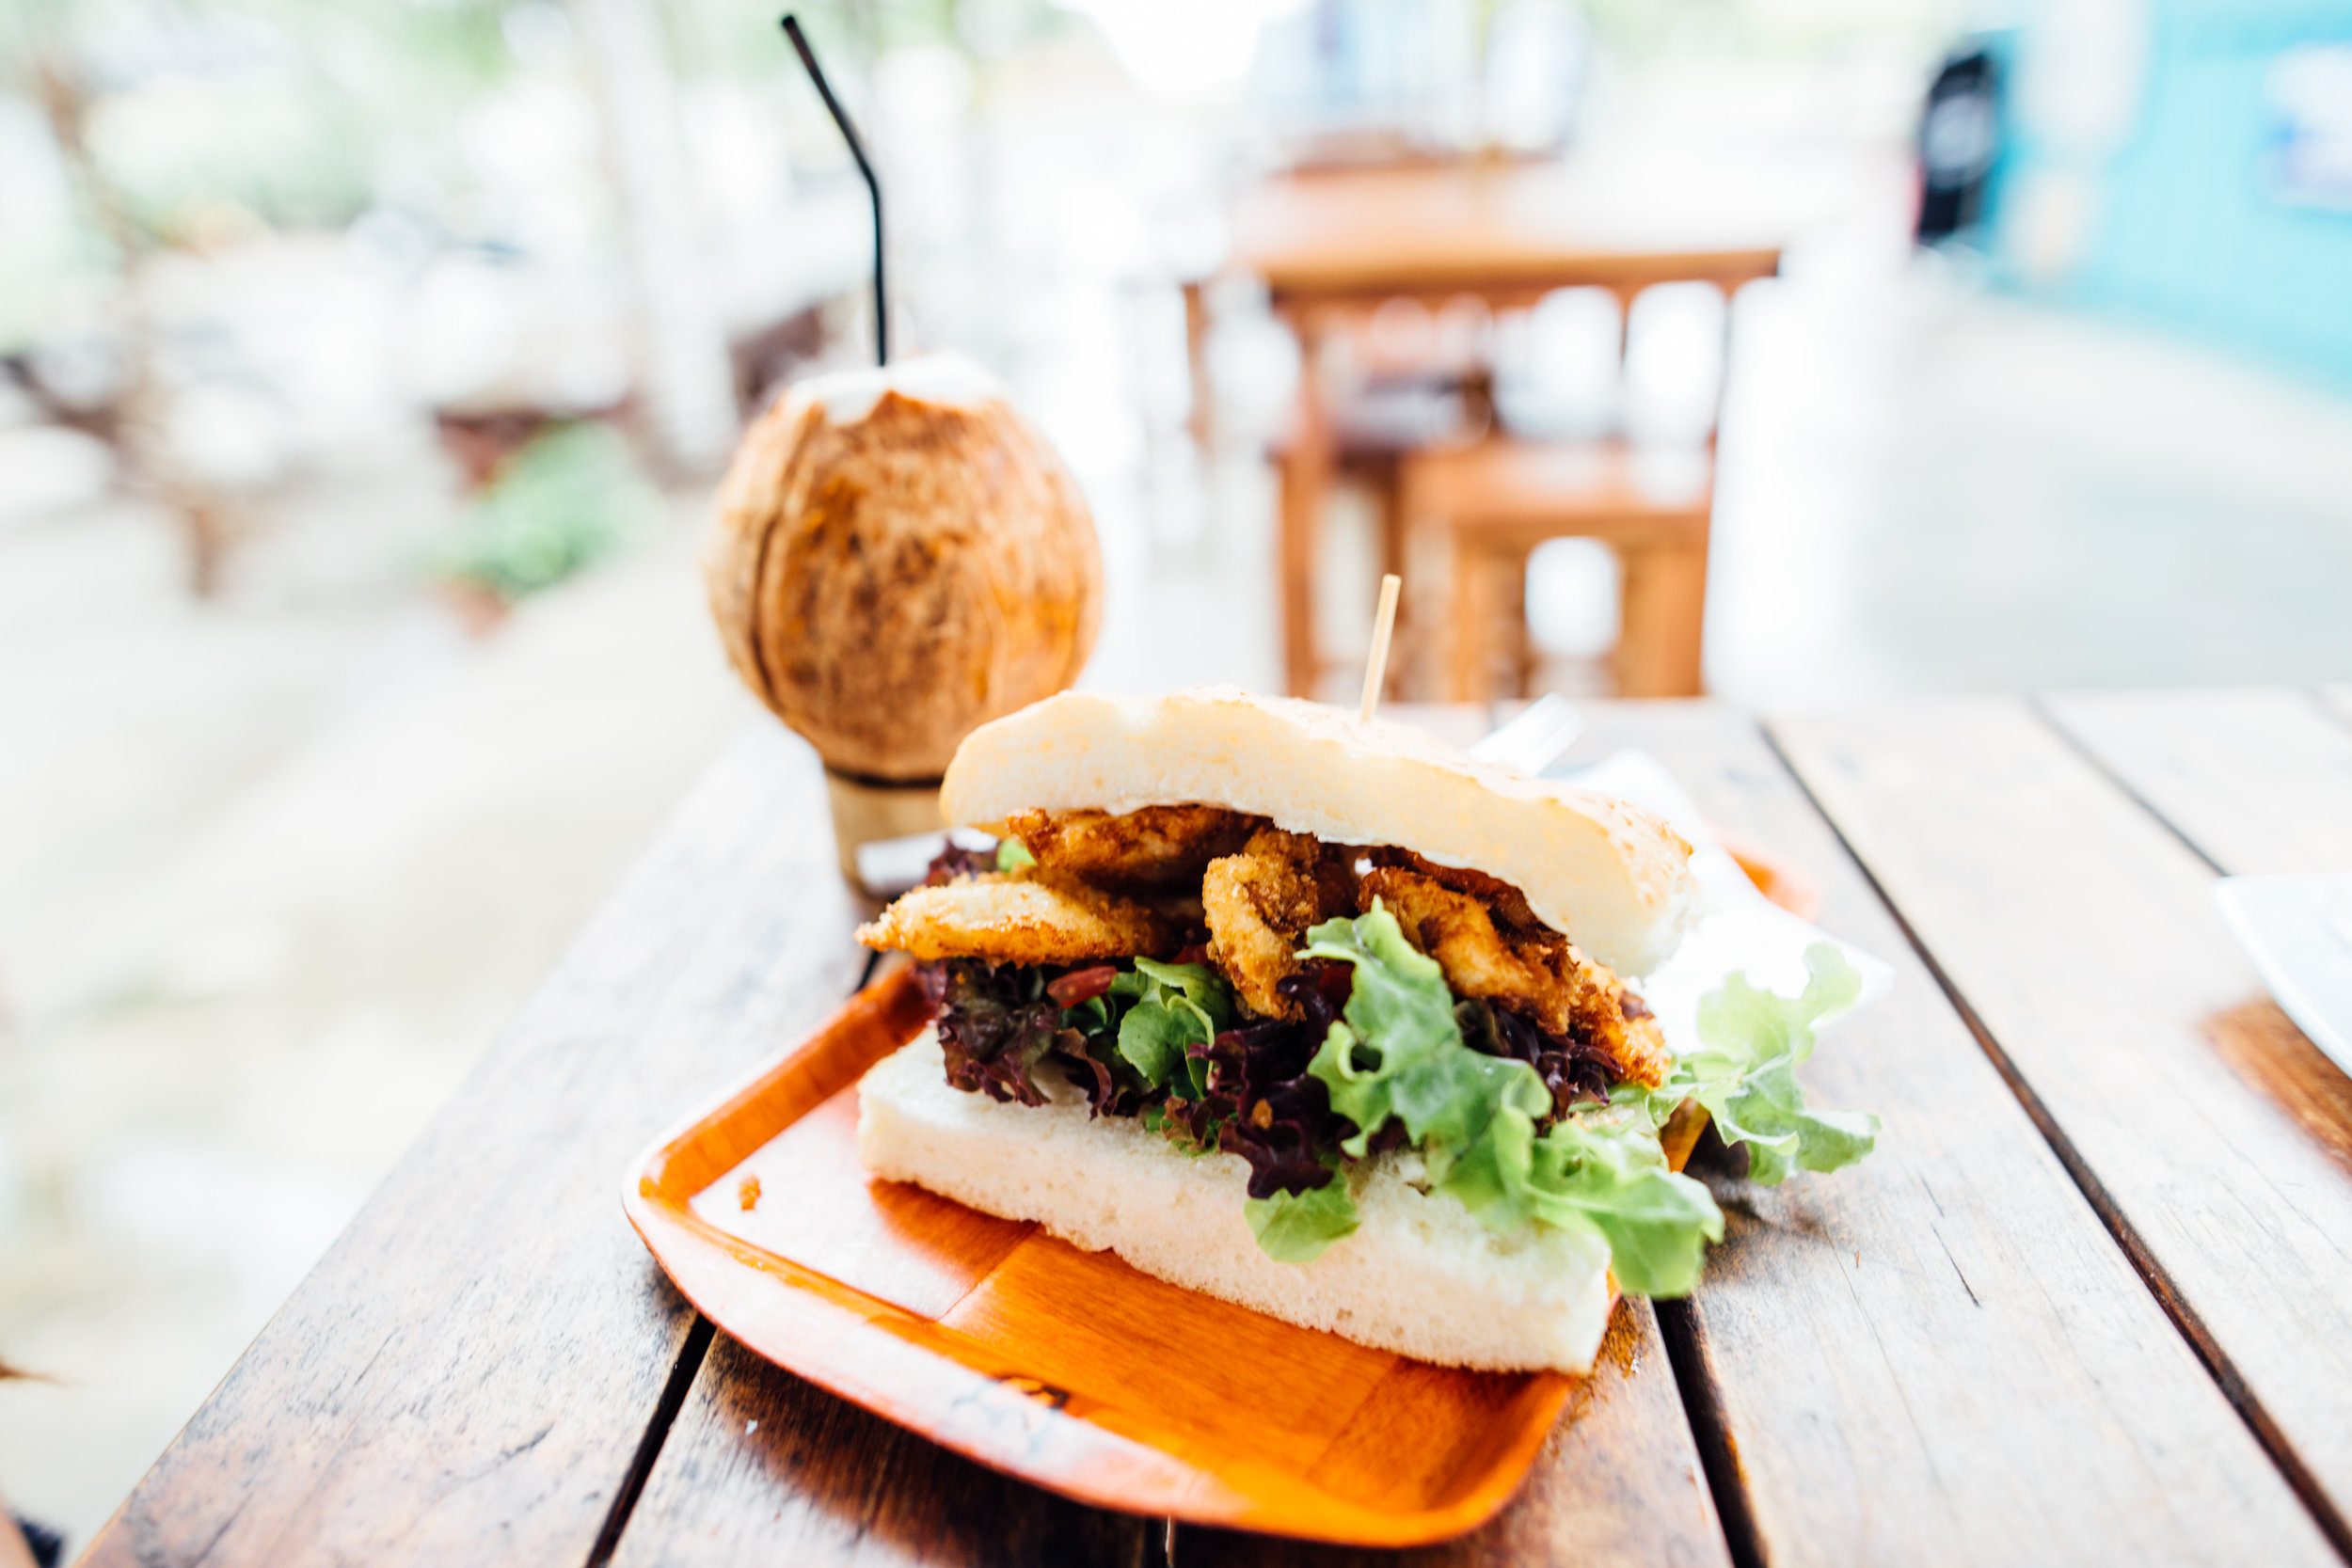 Easily the best fried fish sandwich of the dozen we tried on the island. And a coconut.